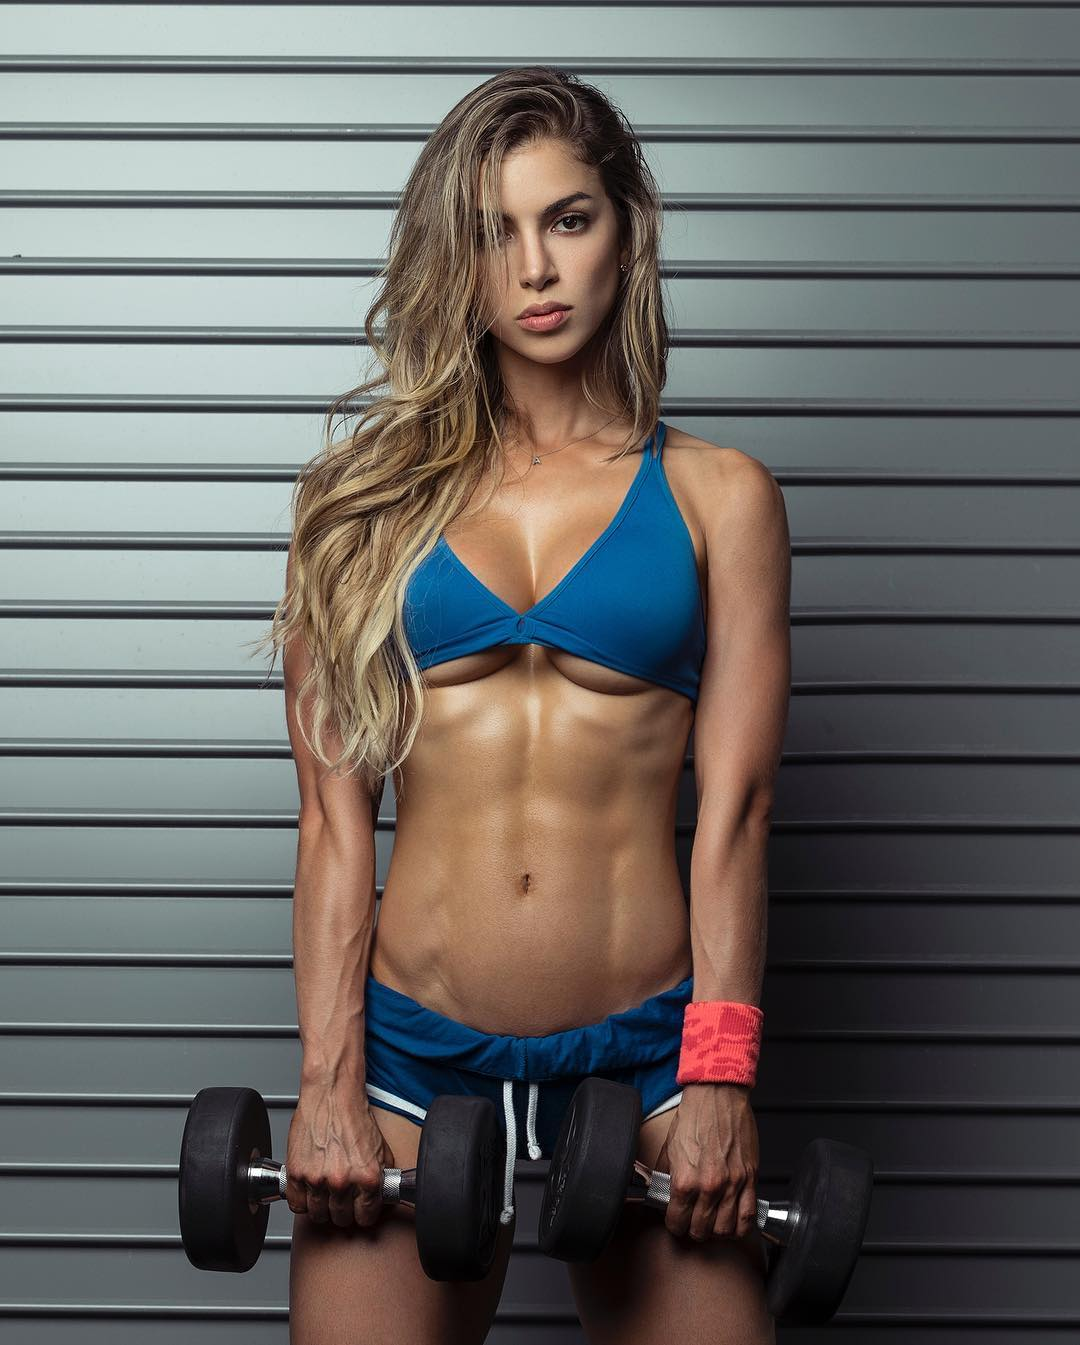 Anllela Sagra Inside The Life Of The Colombian Fitness